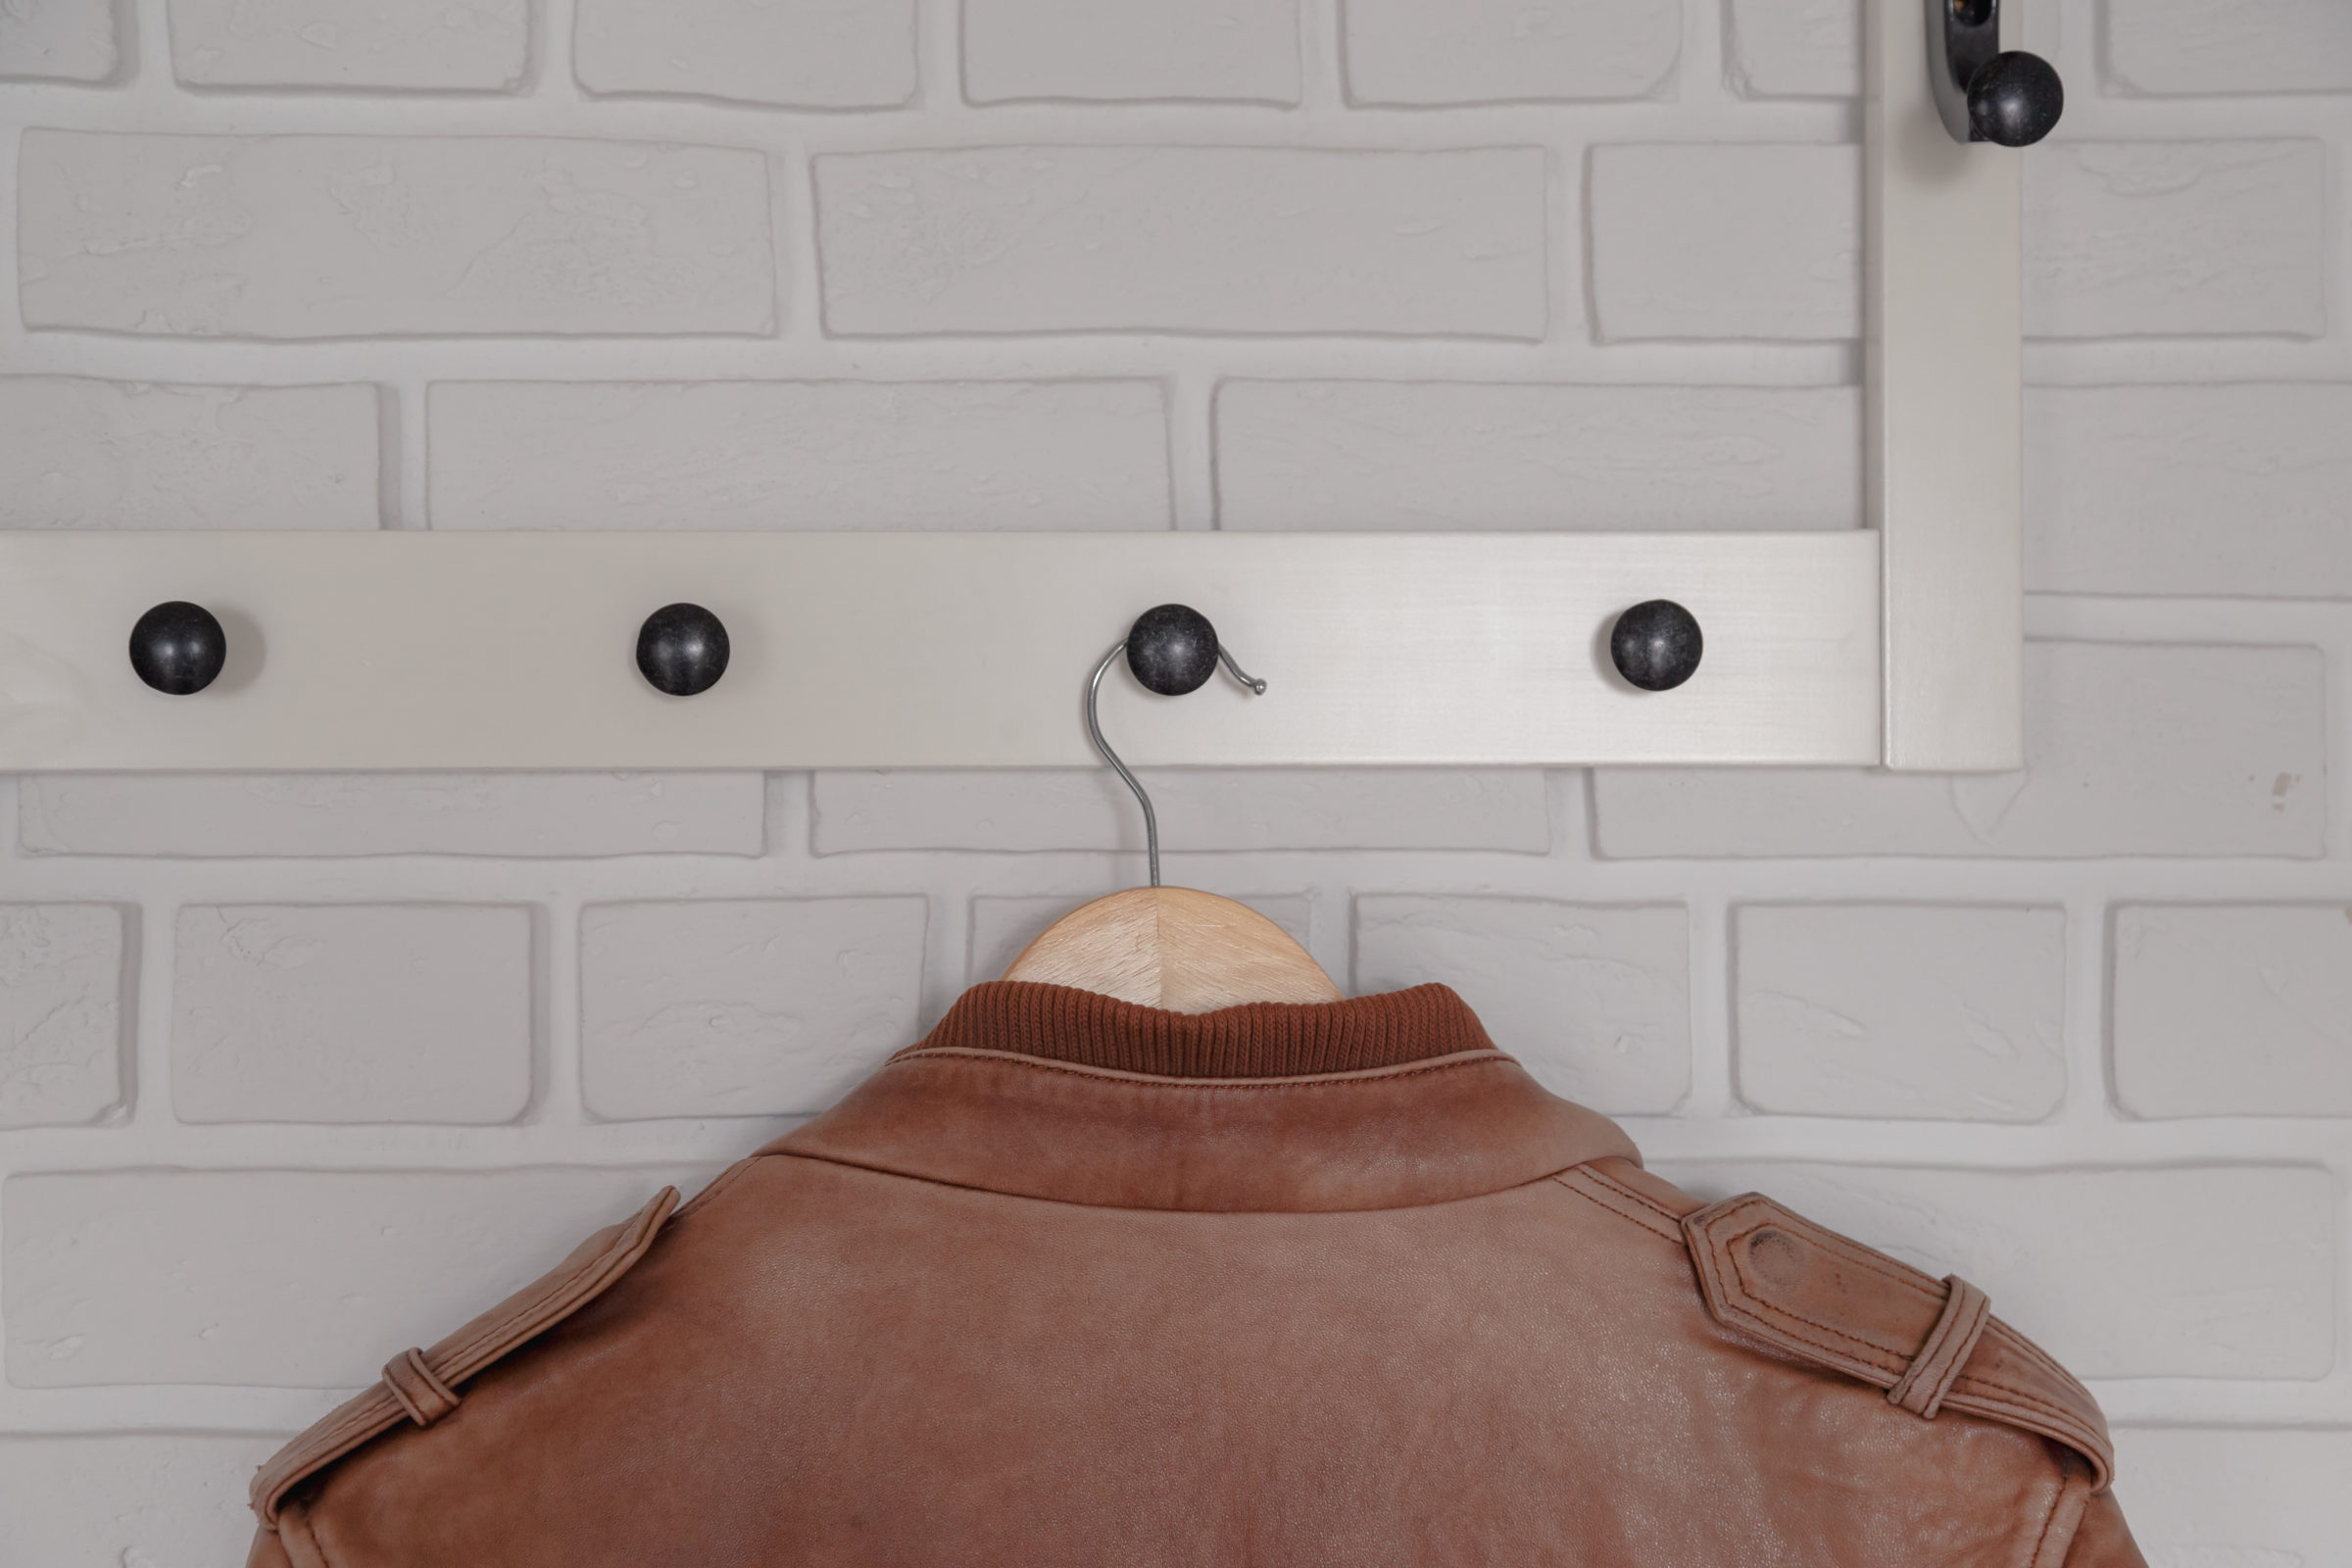 brown leather jacket hanged on white wall hanger GB7PU42